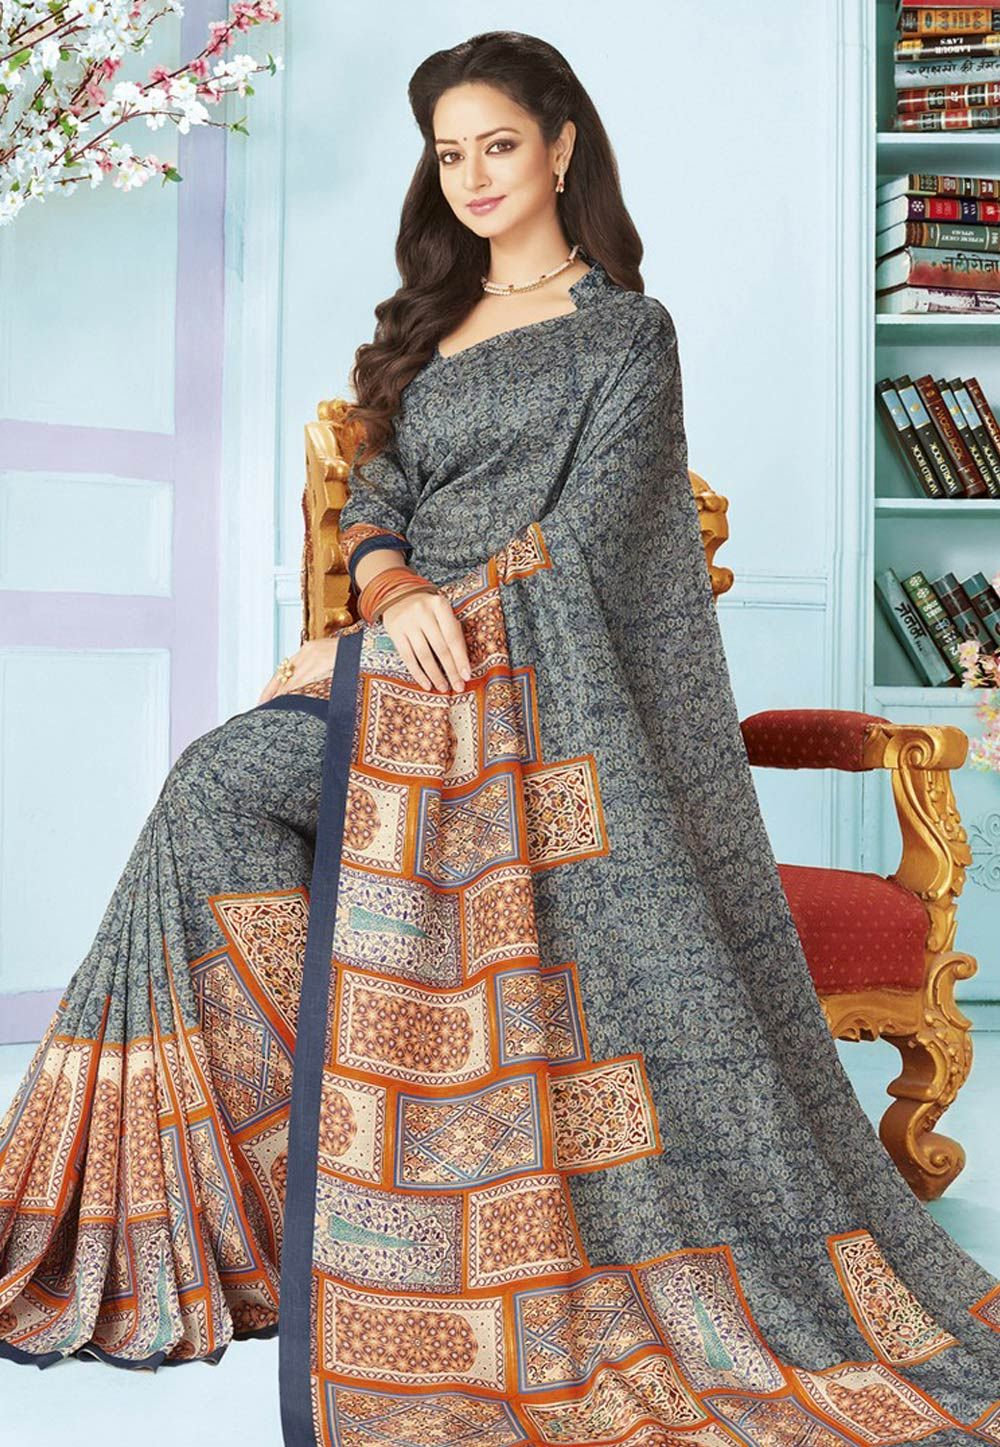 72f5fbe64e2 Buy Gray Art Silk Printed Saree With Blouse 156101 with blouse online at  lowest price from vast collection of sarees at Indianclothstore.com.